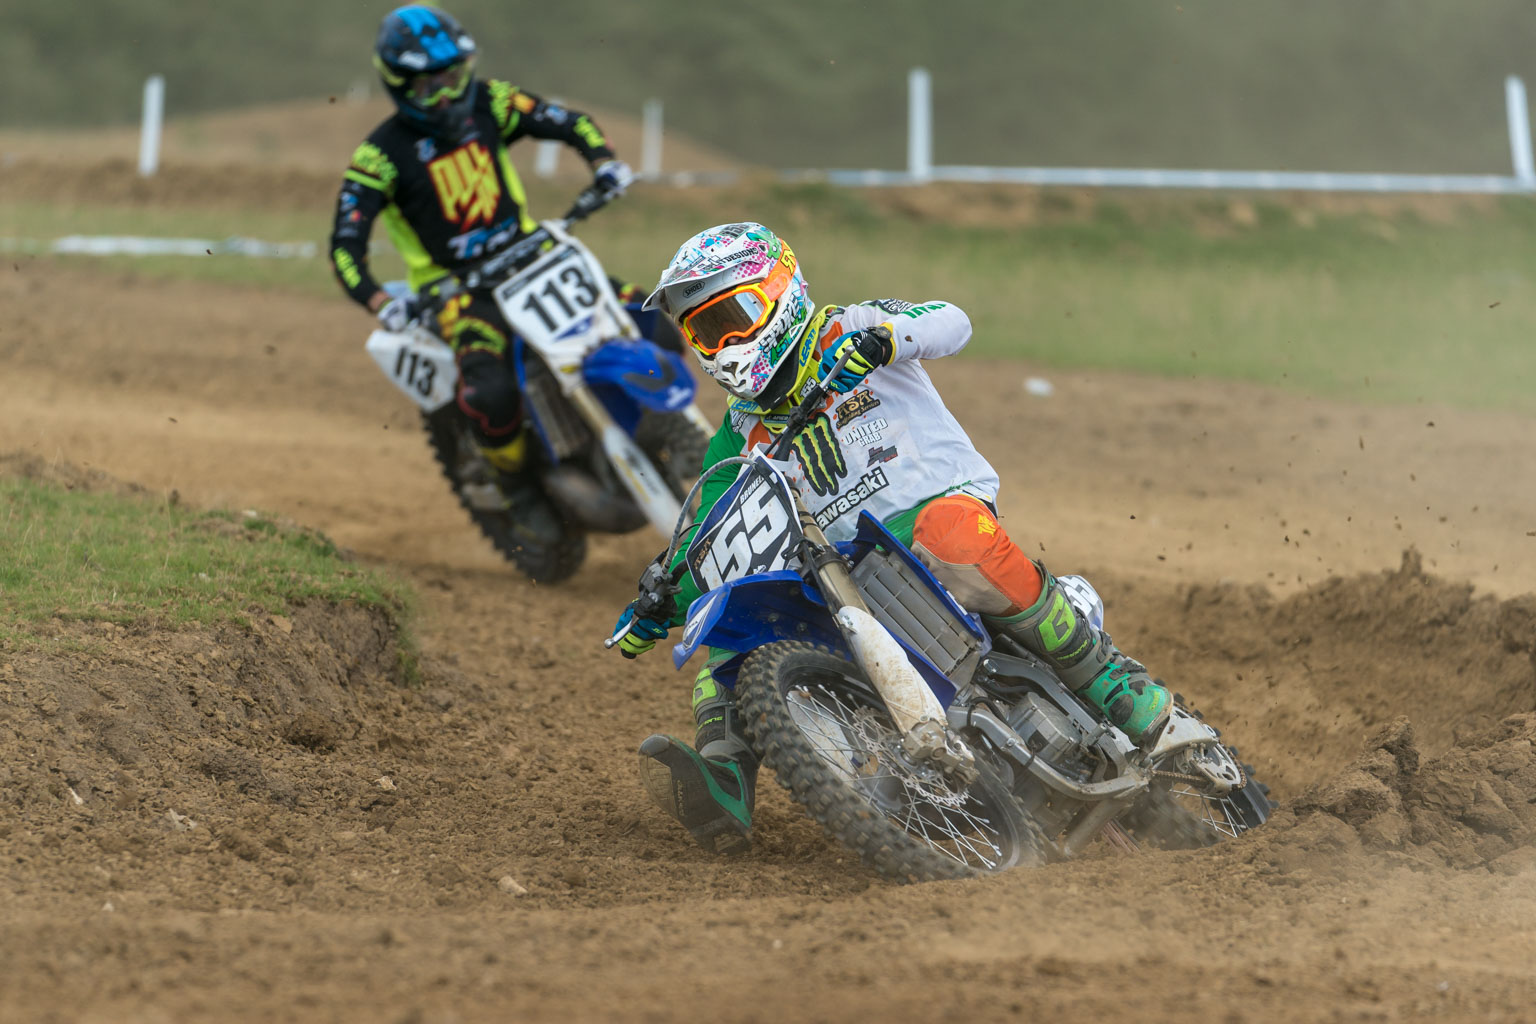 Jack Brunell was in fine form to win the 125 Faster class